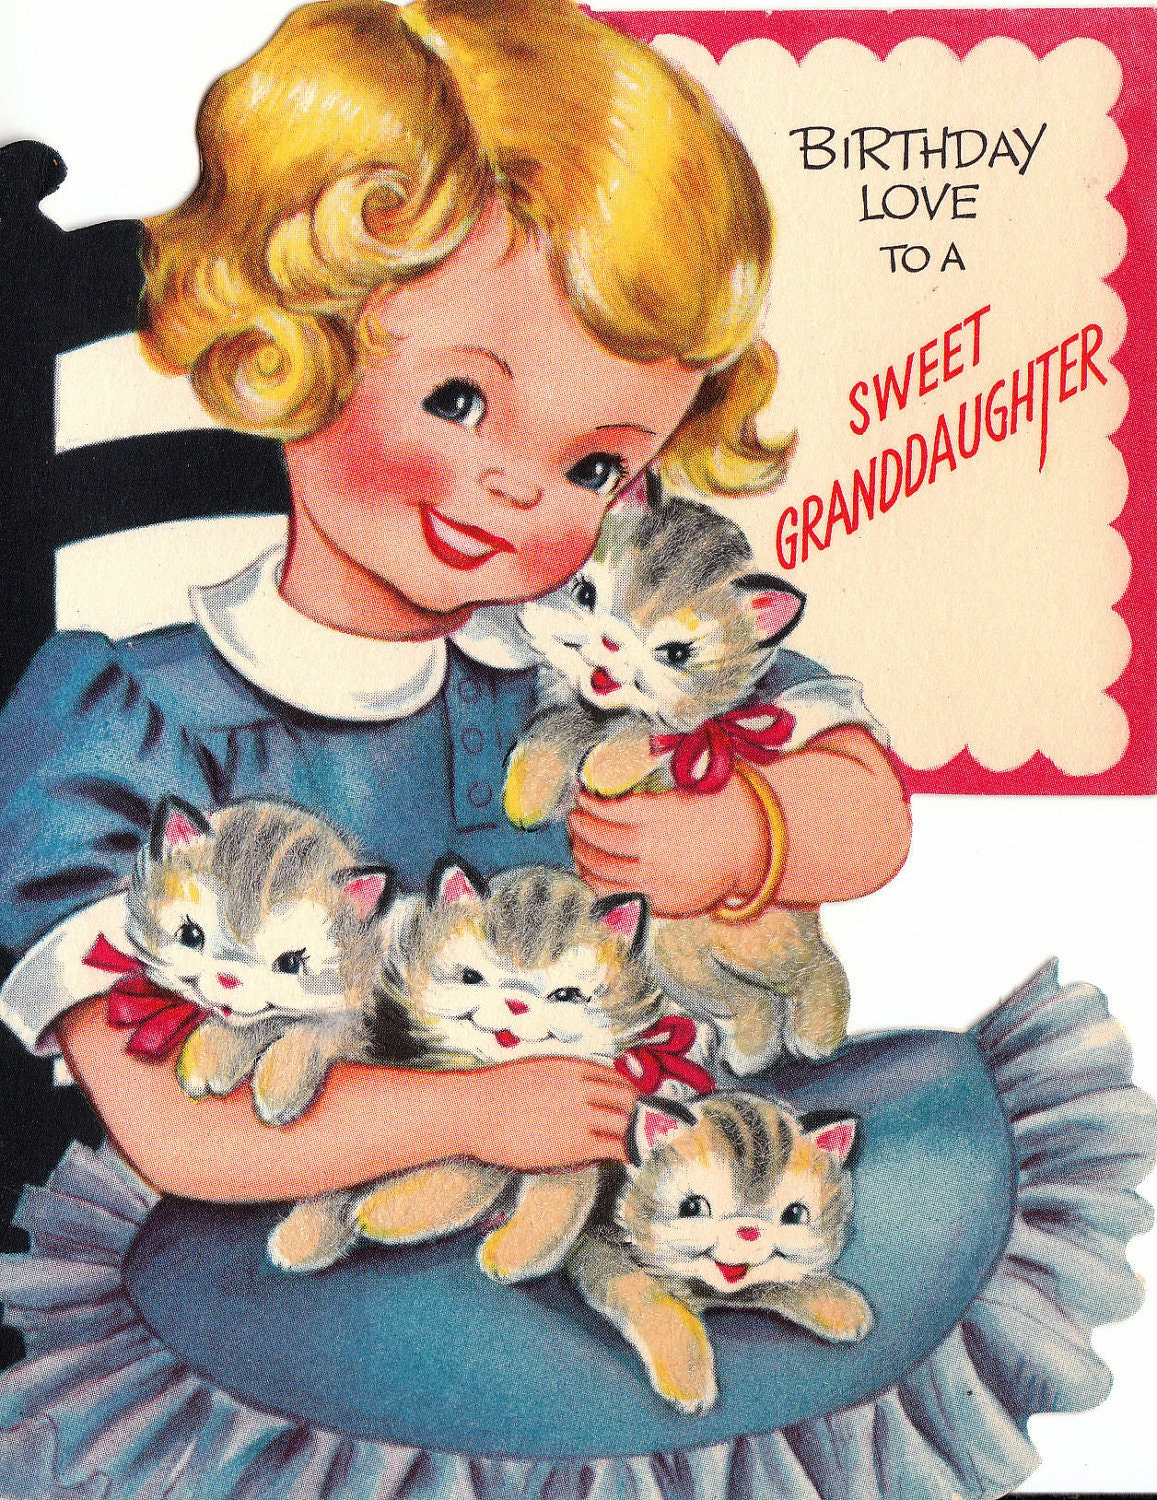 Vintage 1960s Birthday Love To A Sweet Daughter Greetings Card